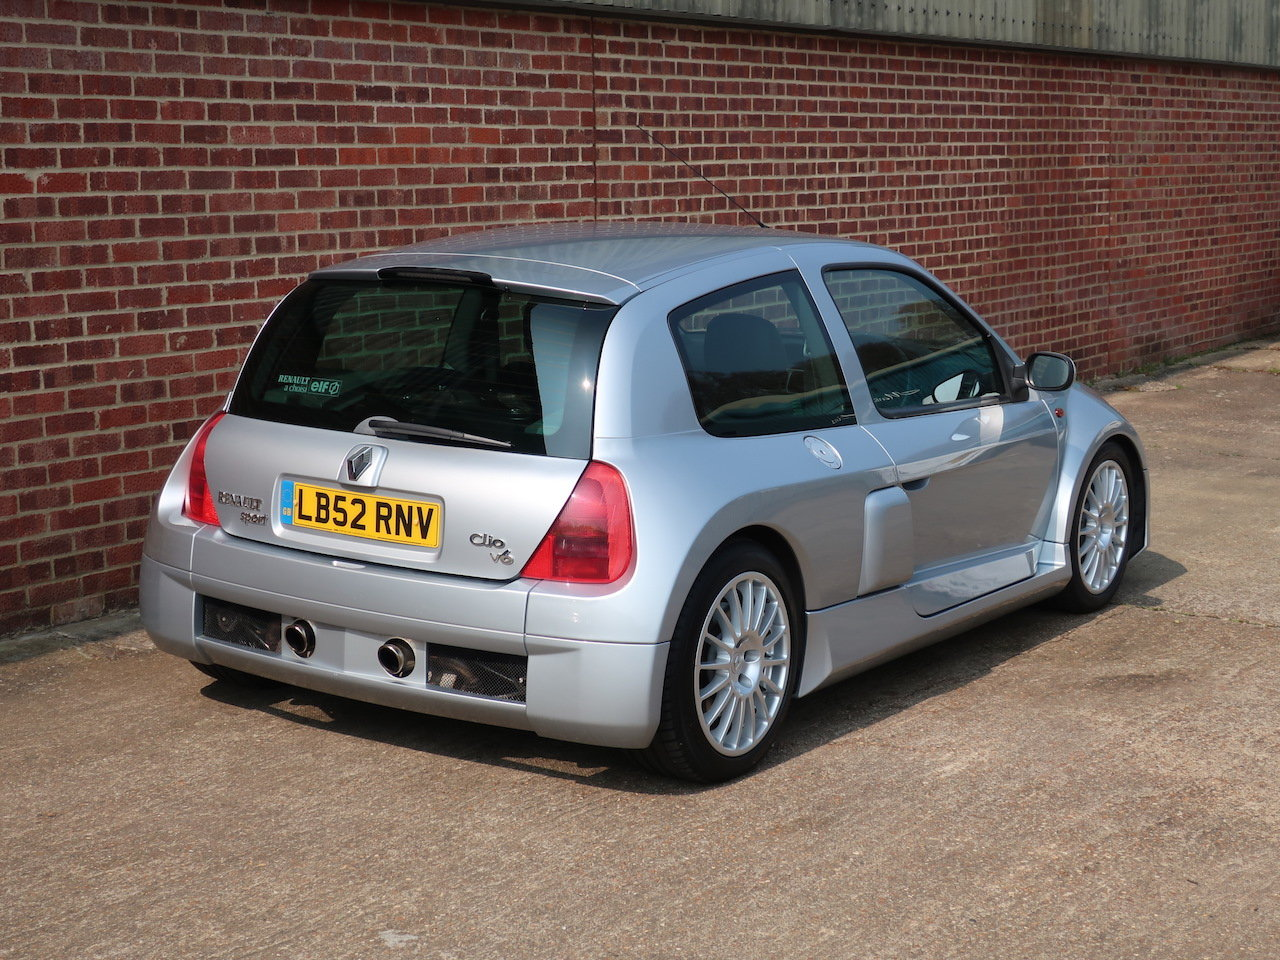 2002 Renault Clio V6  For Sale (picture 3 of 6)